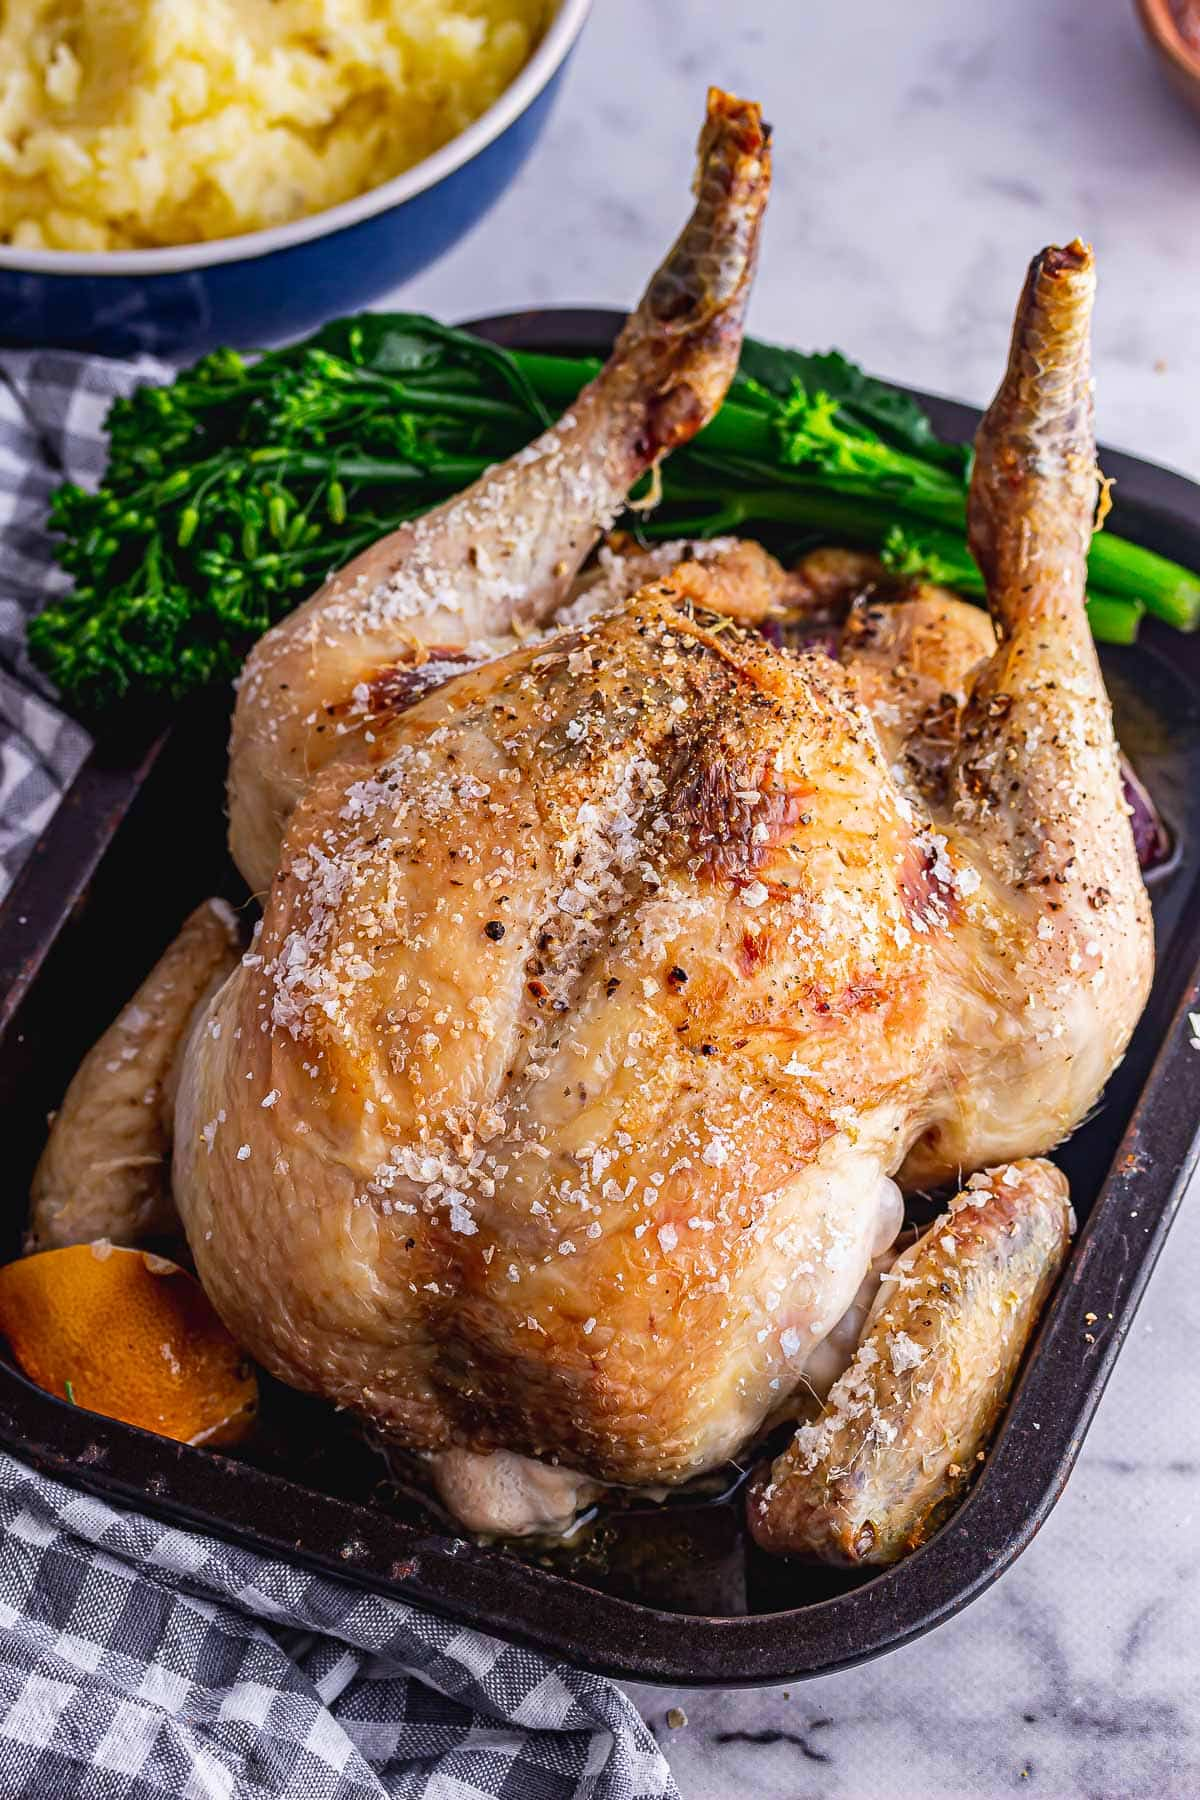 Simple whole roasted chicken with broccoli in a black roasting tin